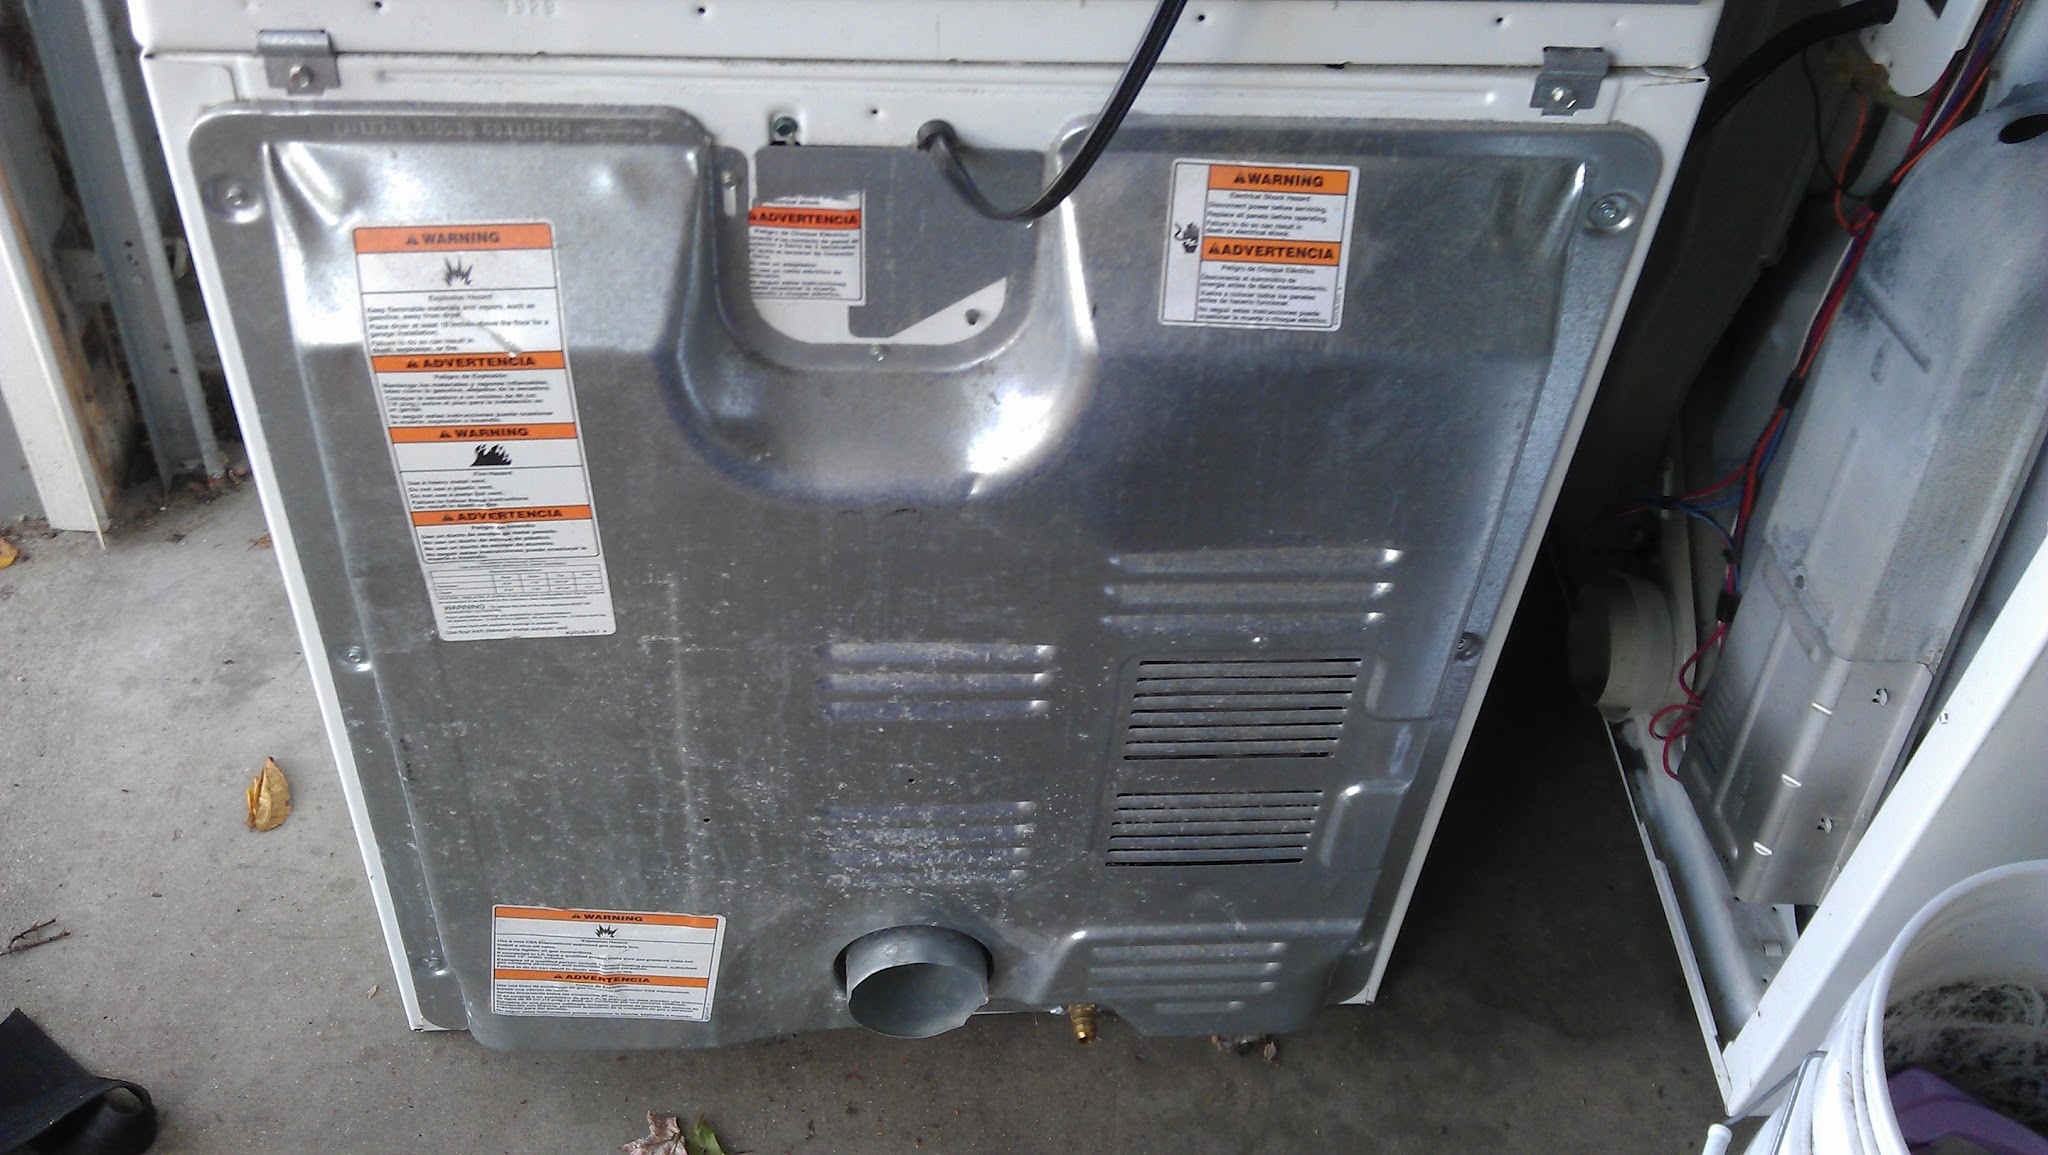 Where is the heating element on a Whirlpool Dryer? - Dryer Not Heating